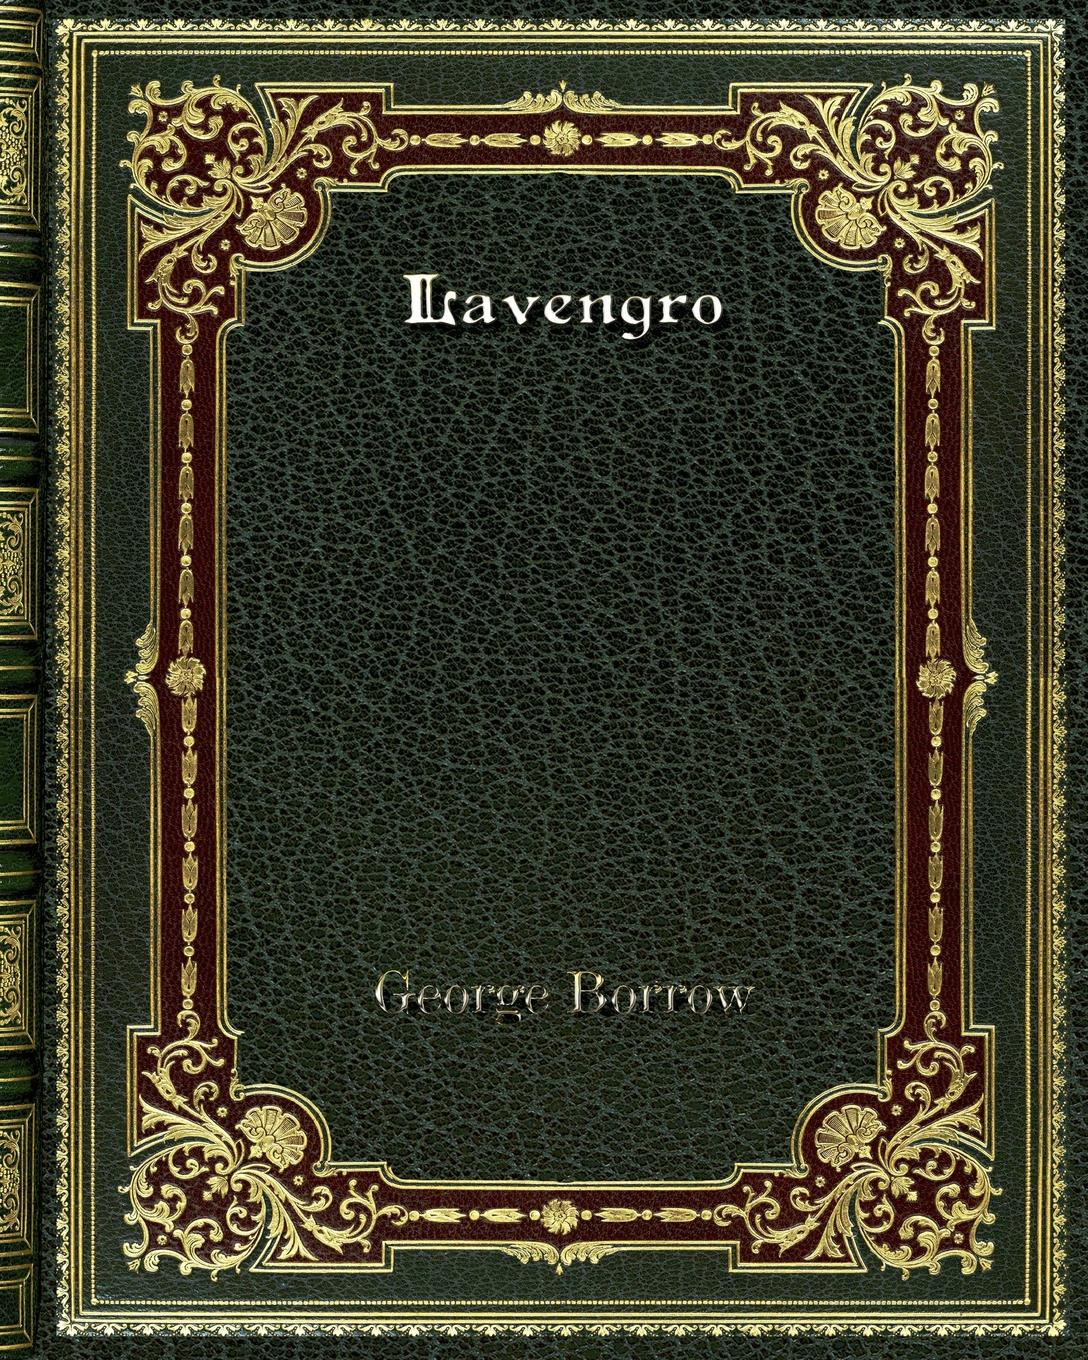 George Borrow Lavengro borrow george the giant of bern and orm ungerswayne a ballad